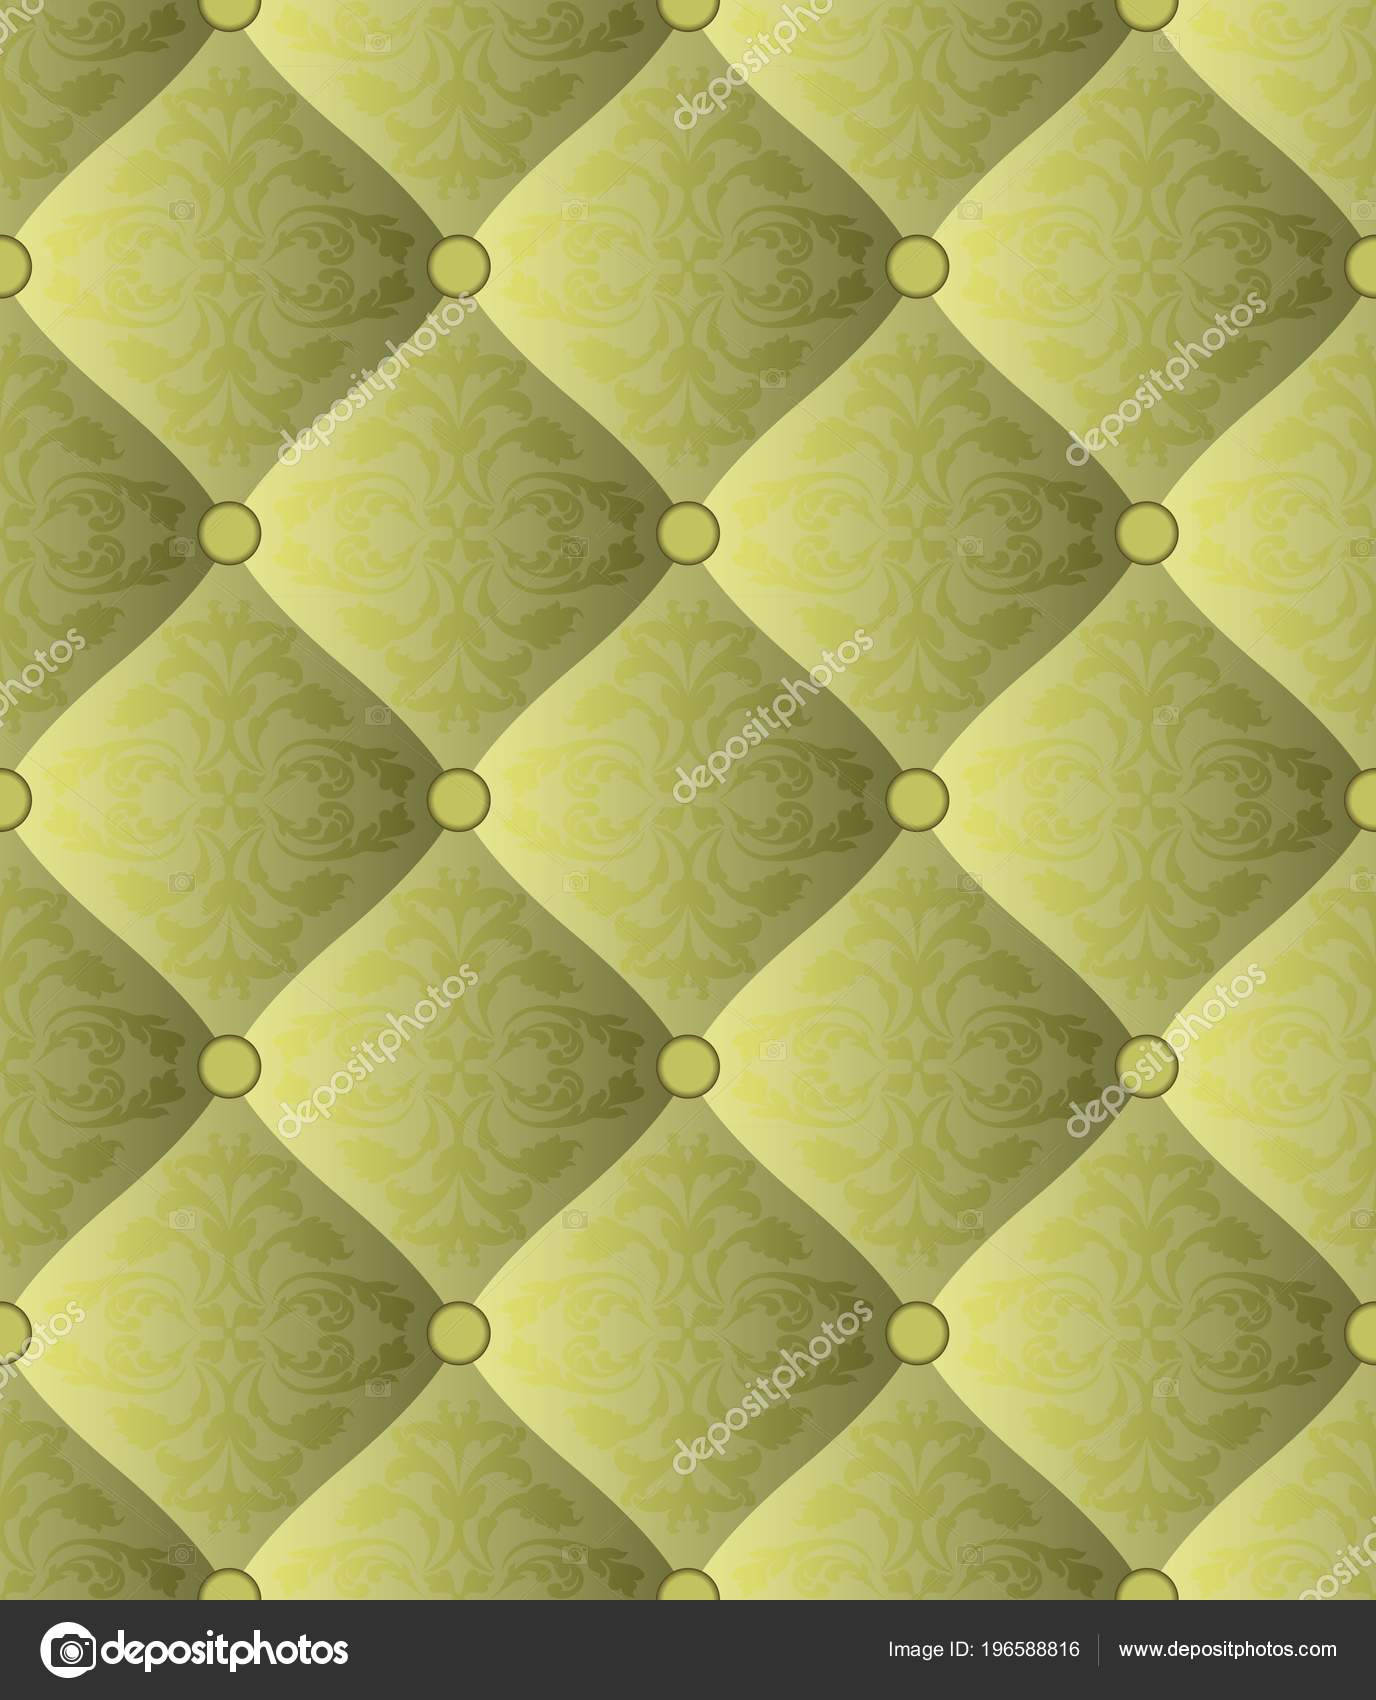 Quilted Fabric Quilted Fabric Ornament Seamless Pattern Stock Vector Mtmmarek